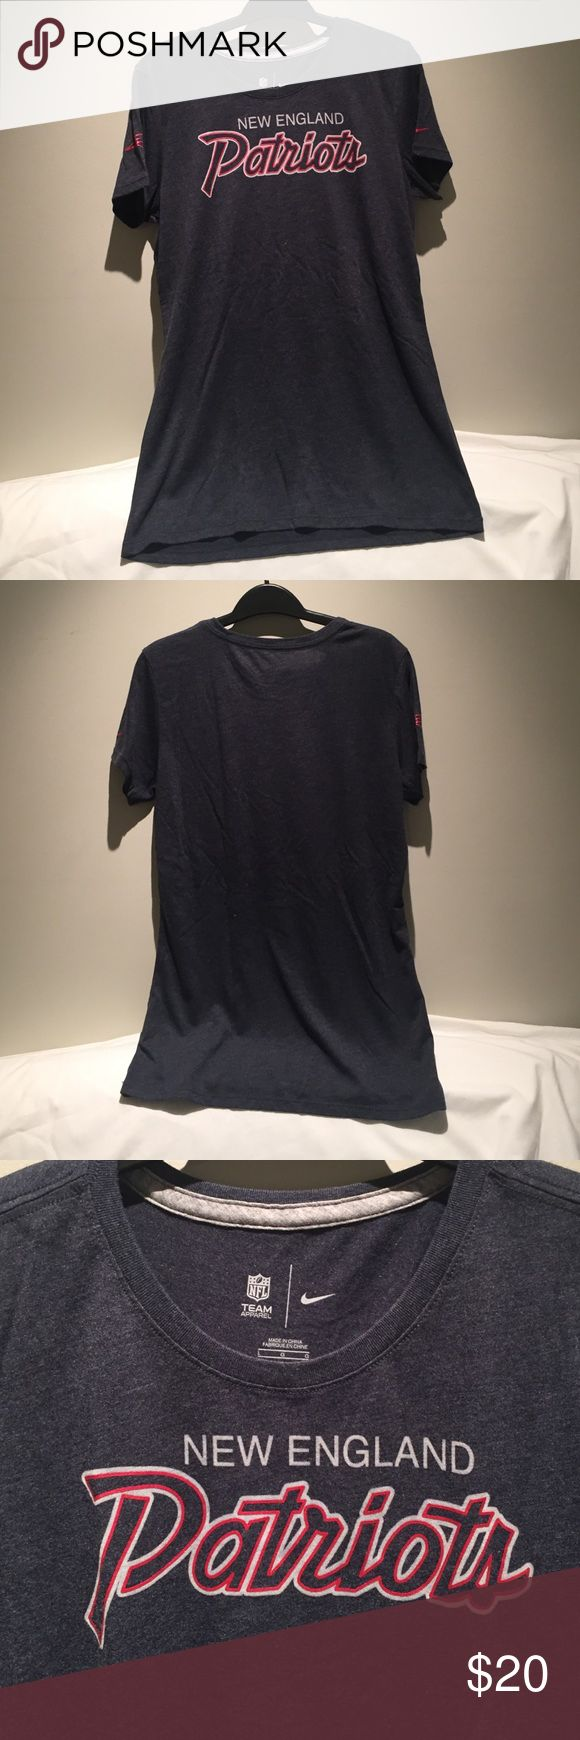 Nike Patriots ladies t-shirt This shirt has been worn and washed once. Authentic Nike NFL team apparel. Nike Tops Tees - Short Sleeve